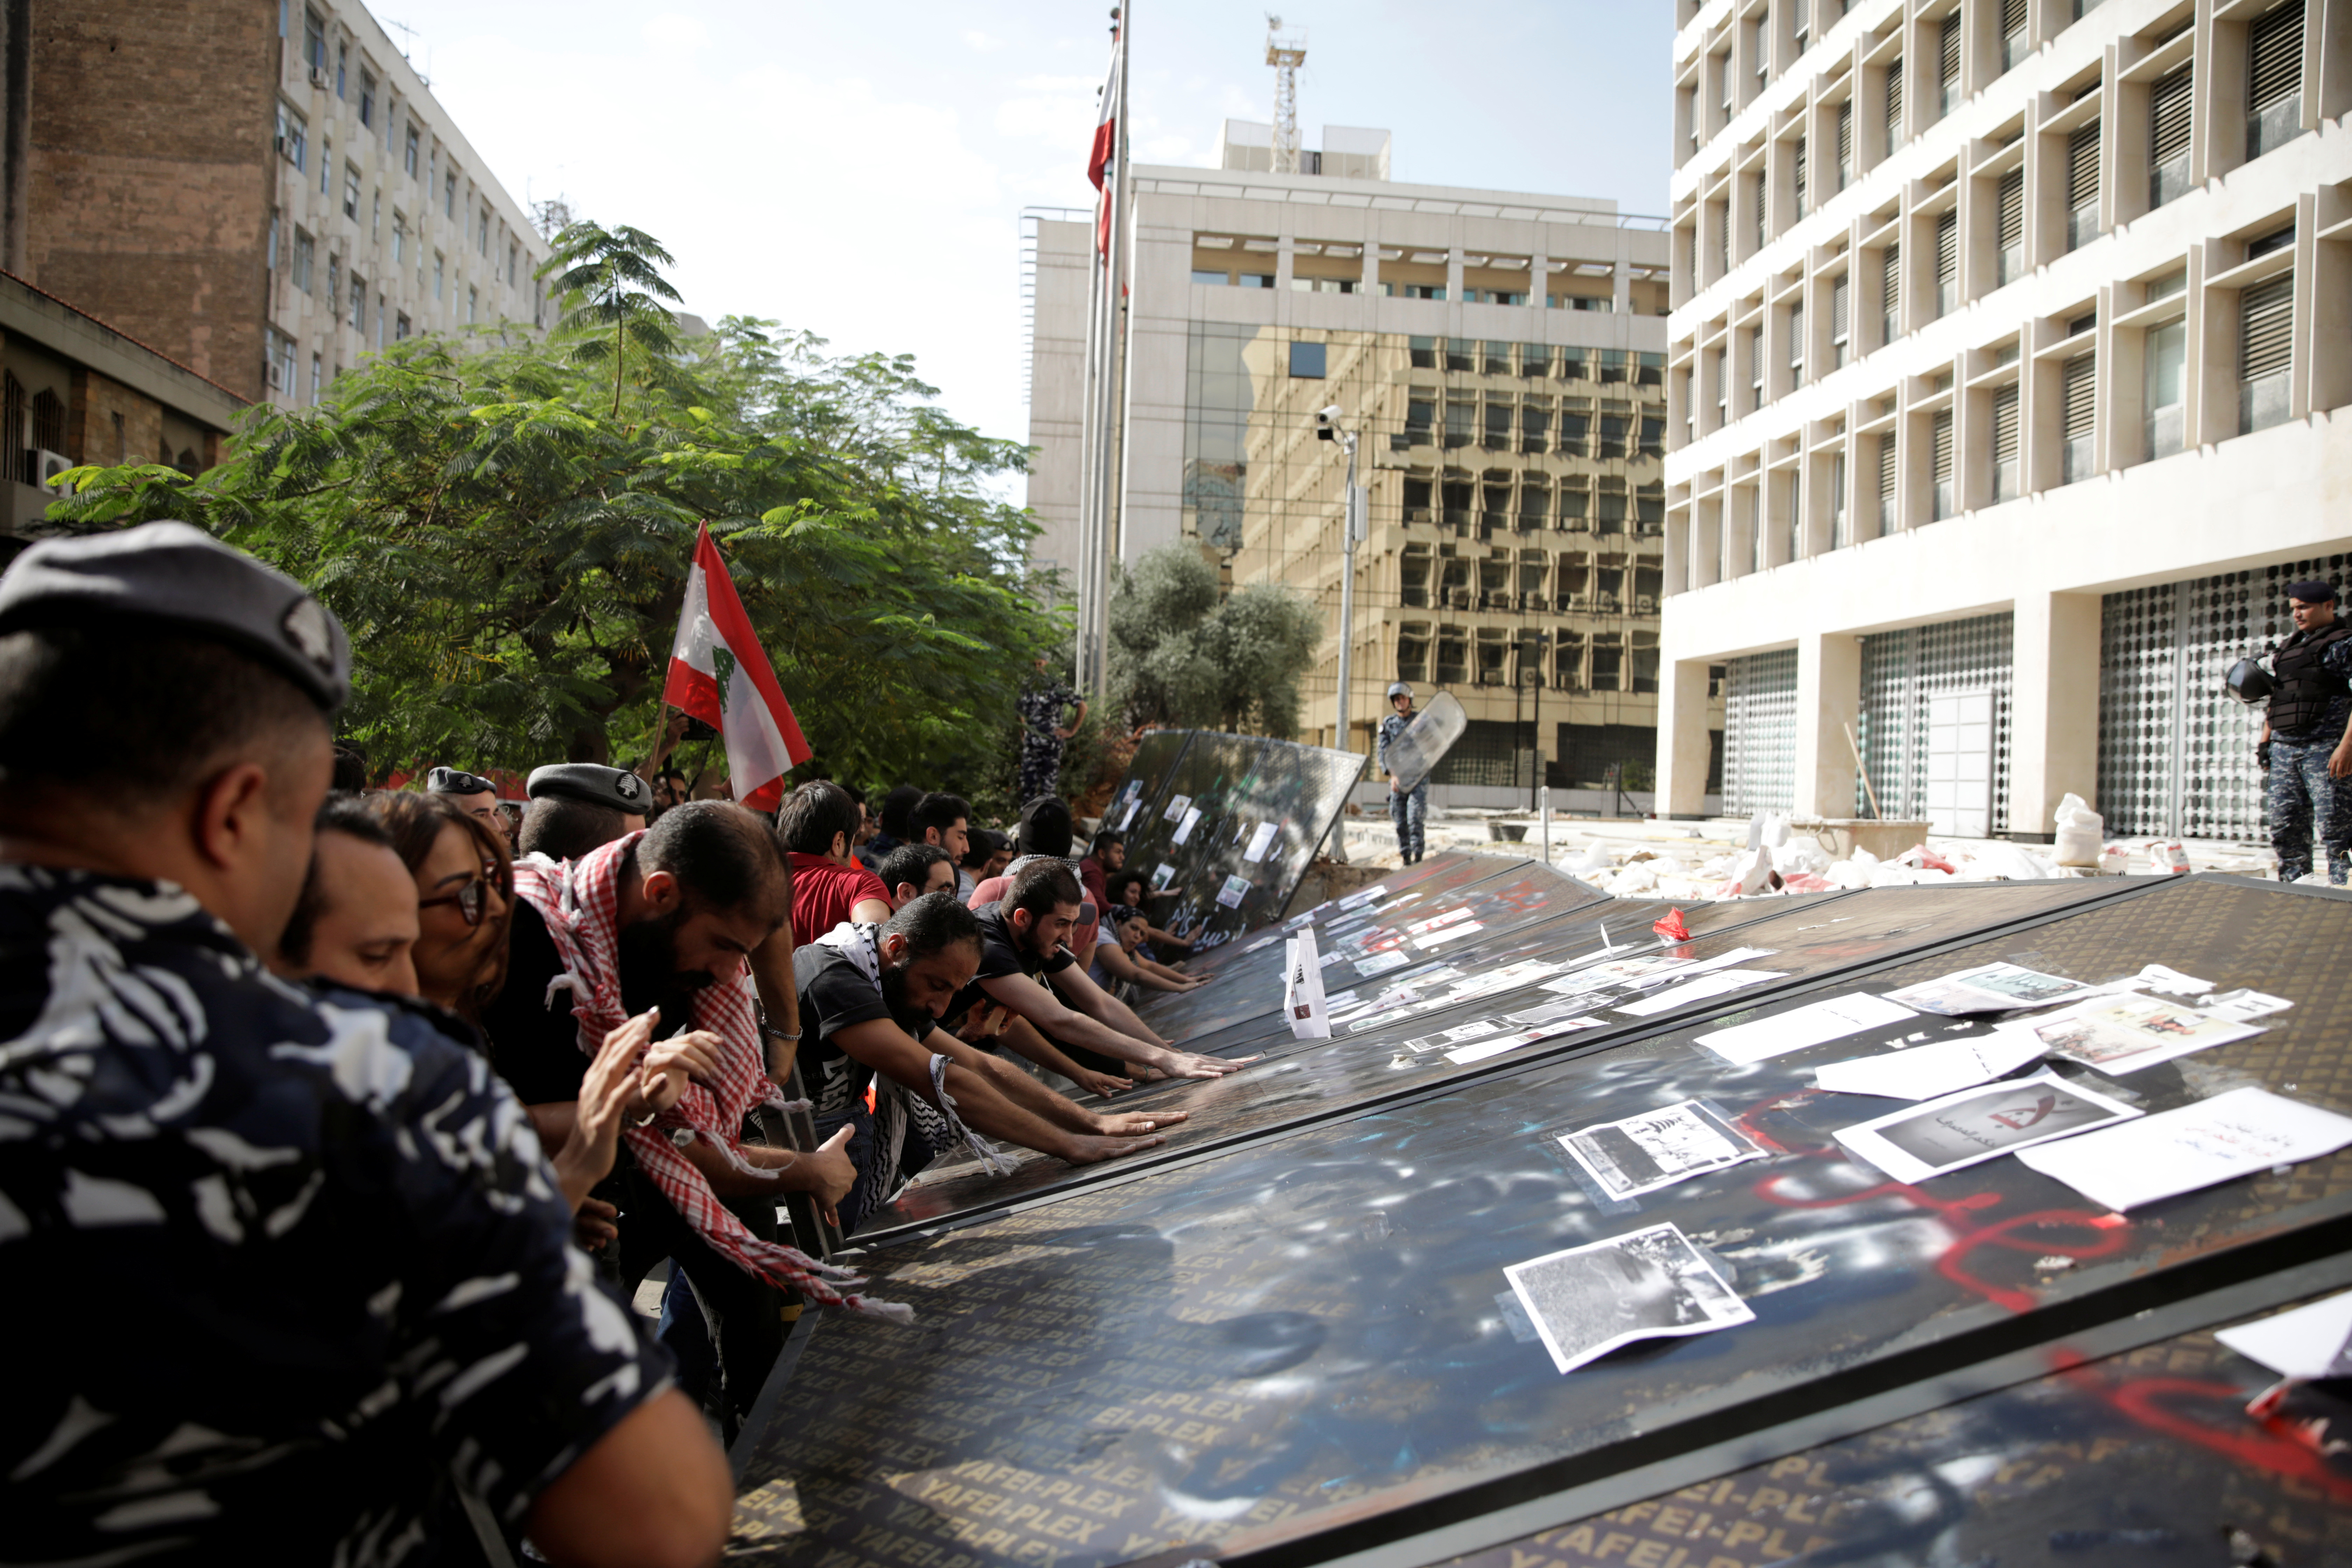 Protesters gather outside Lebanon's central bank in Beirut in 2019 (Reuters)